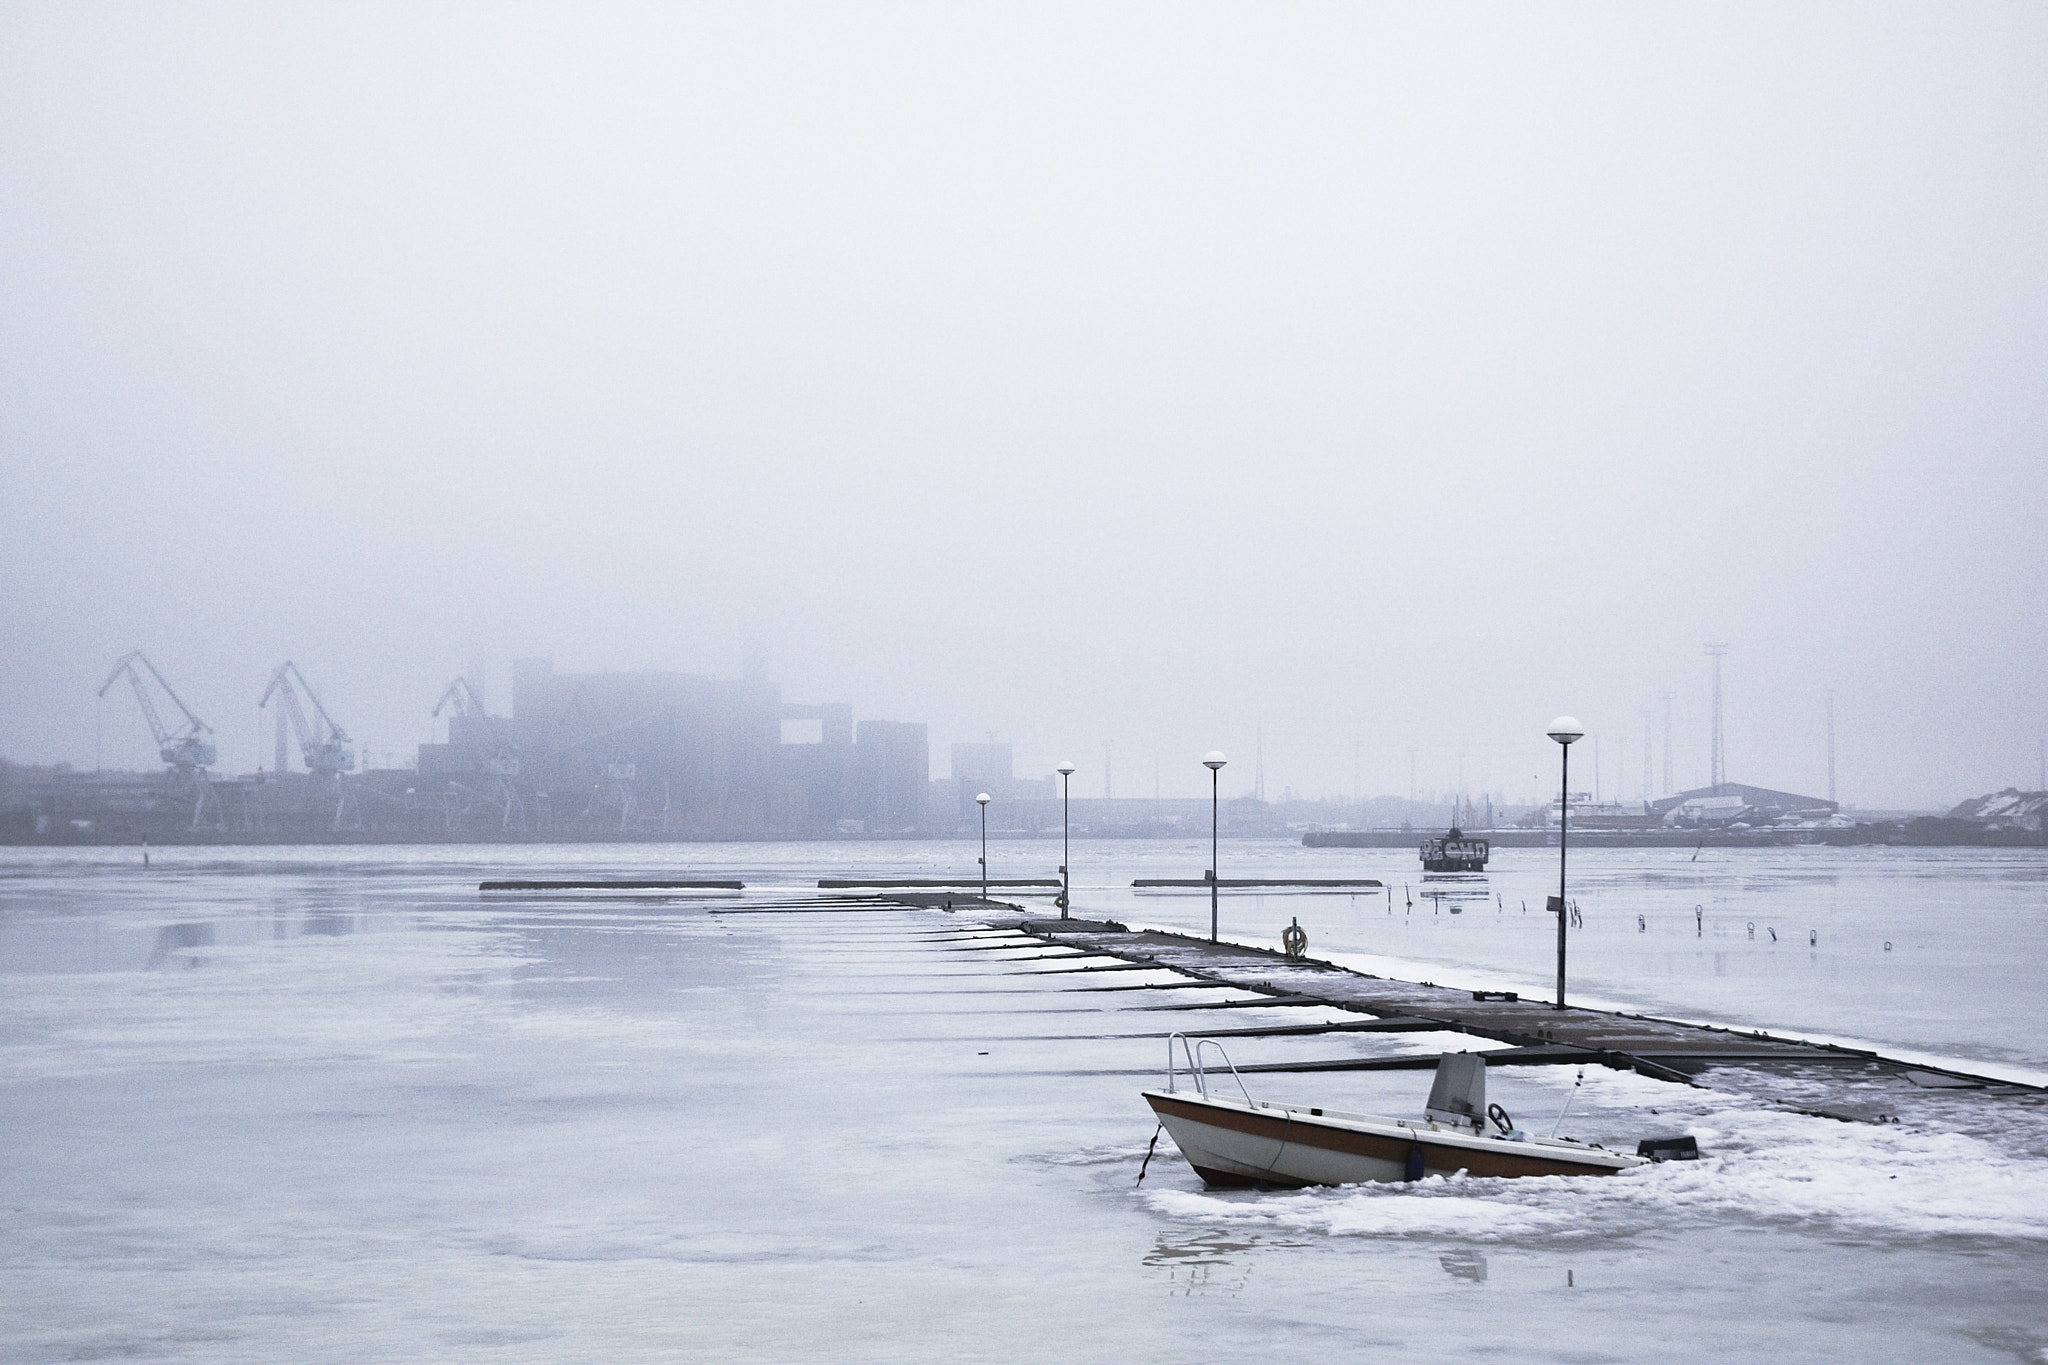 Photograph Foggy Helsinki by Mike m13/9 on 500px